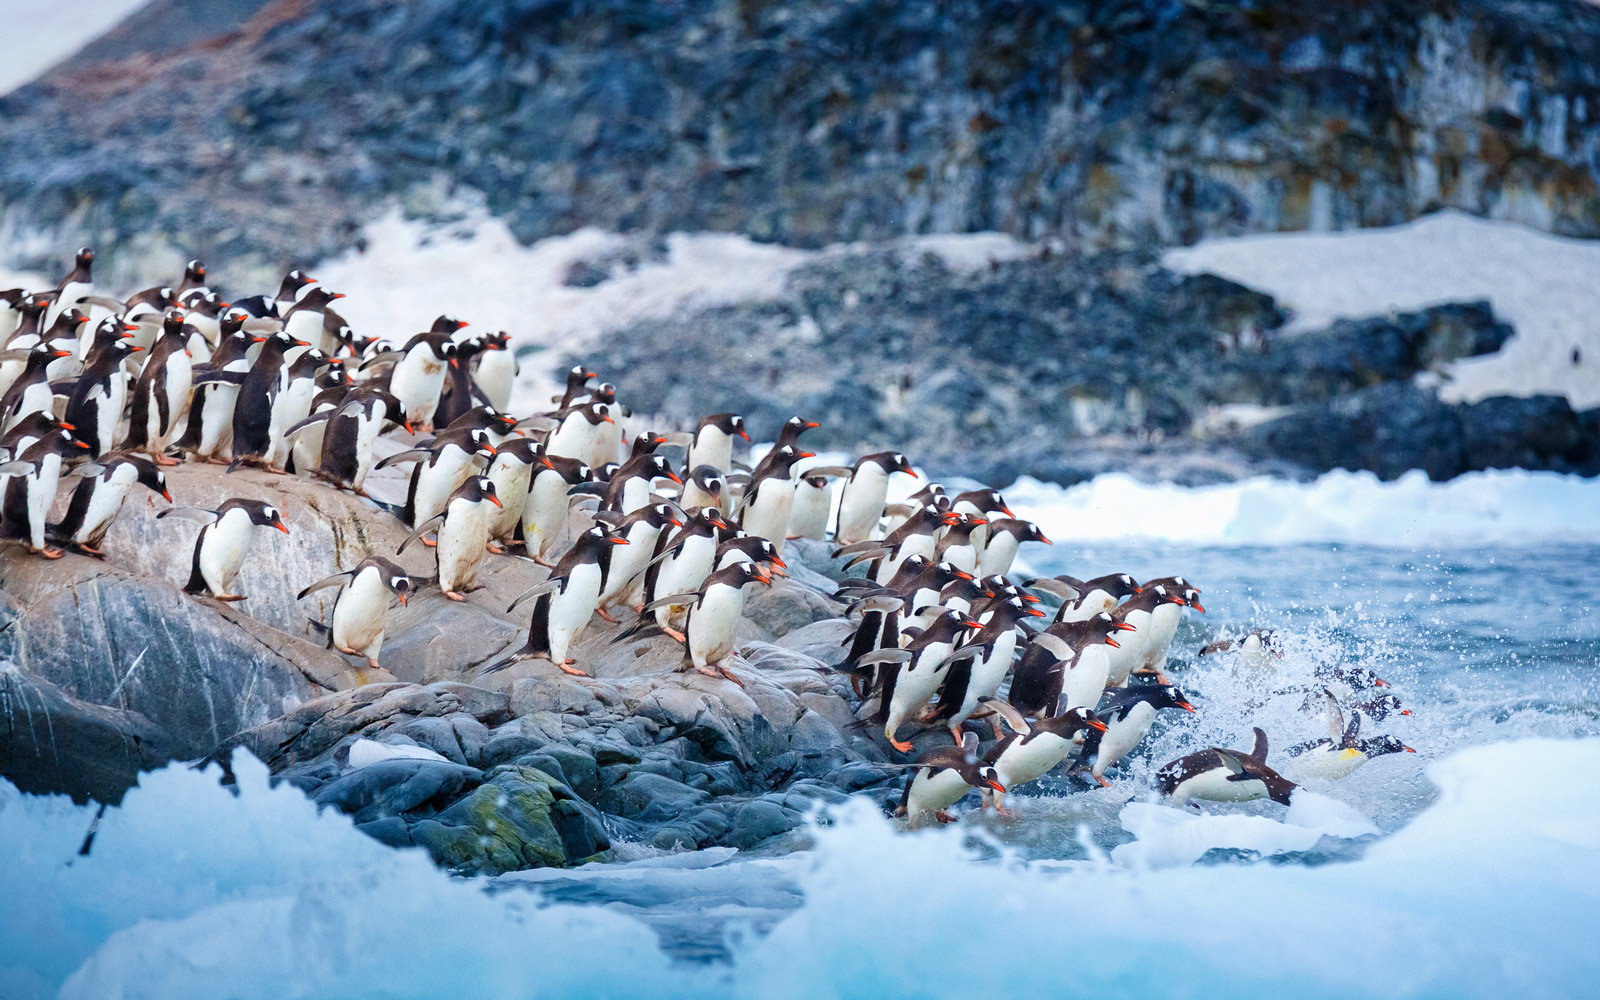 A large group of Gentoo penguins rush into the water. Antarctica.